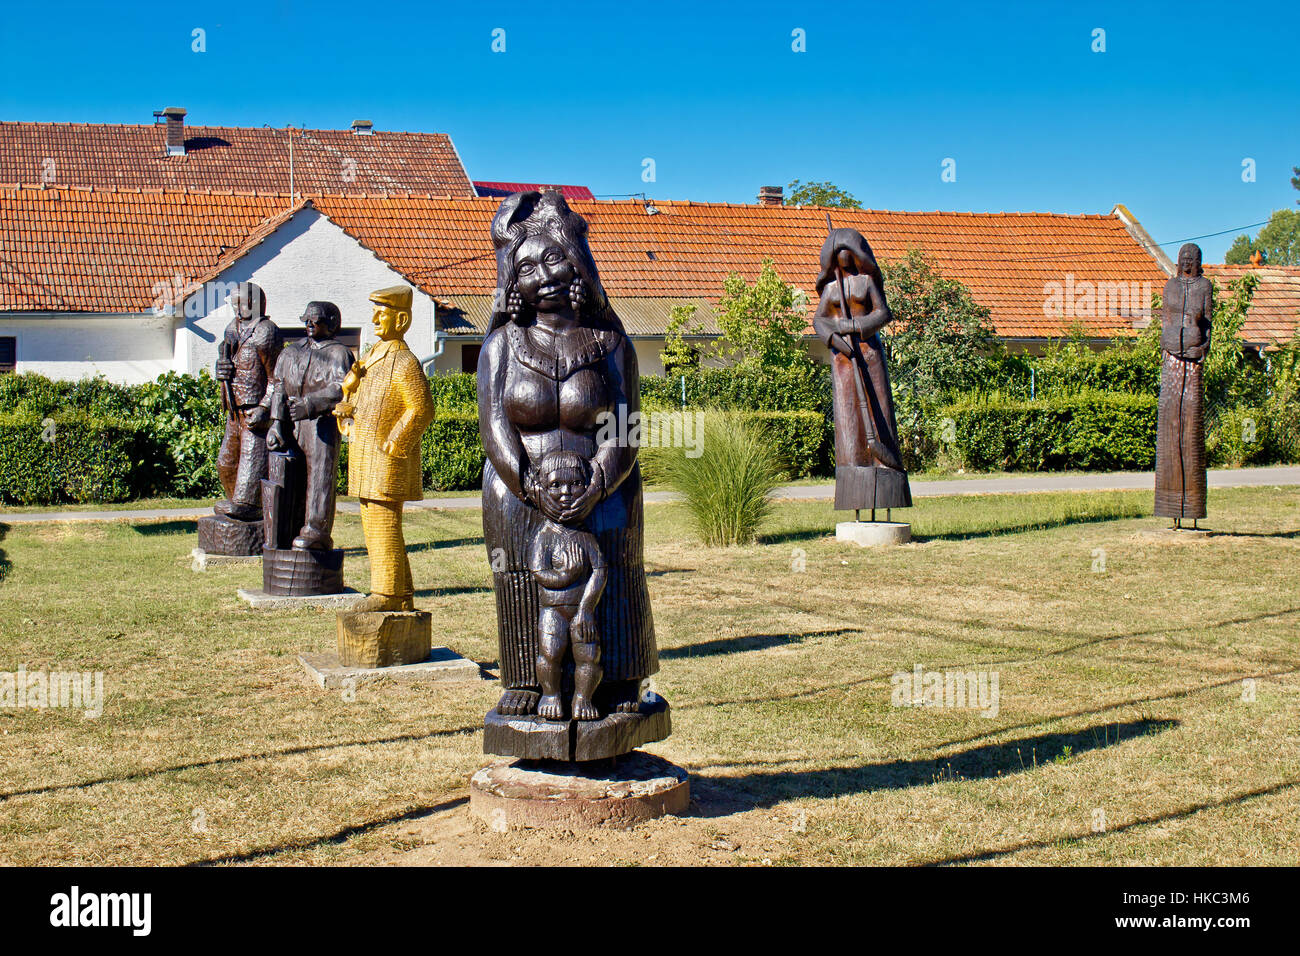 Village of Hlebine wooden statues, center of naive art in Croatia - Stock Image